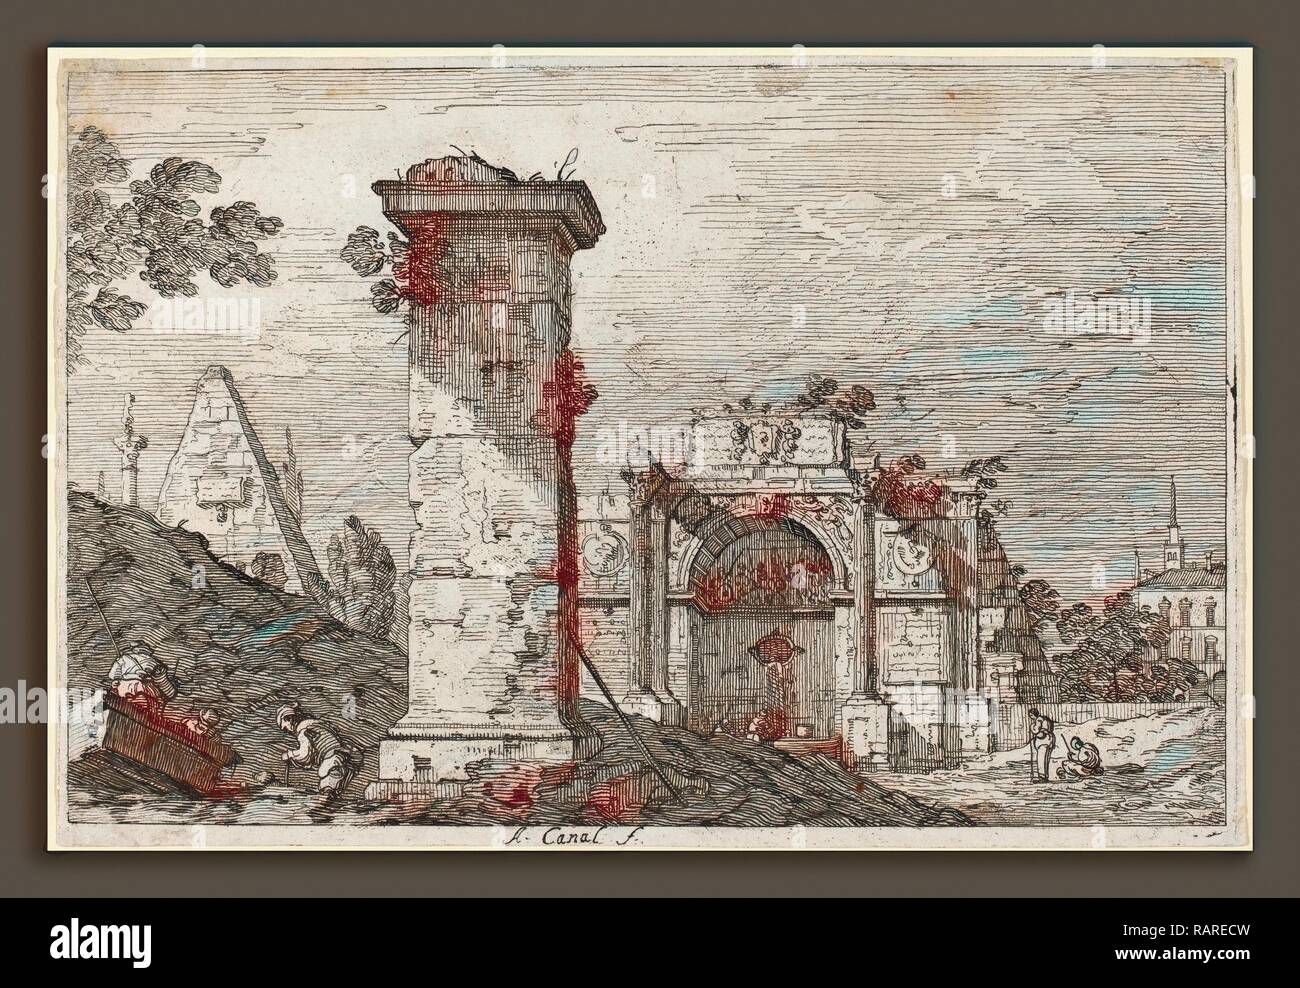 Canaletto (Italian, 1697 - 1768), Landscape with Ruined Monuments, c. 1735-1746, etching. Reimagined - Stock Image